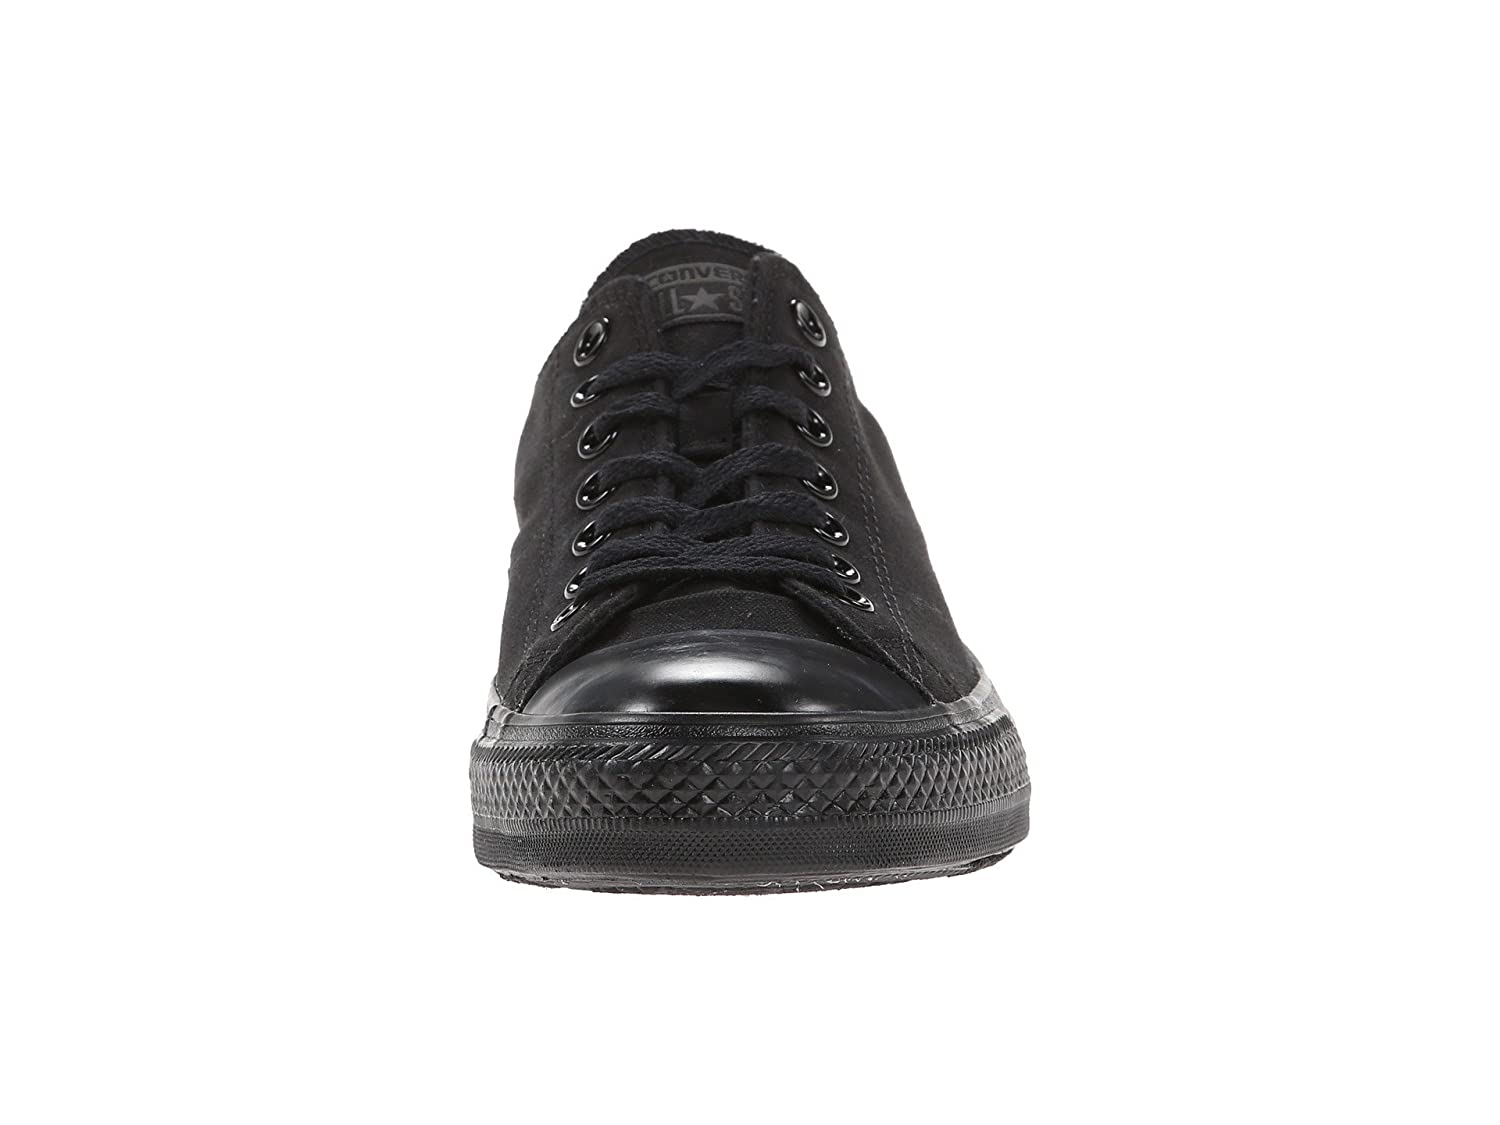 Converse Chuck Taylor Ox (Low Top) M9697 Navy B01M9EQWML 8 B(M) US Women / 6 D(M) US Men|Black Monochrome